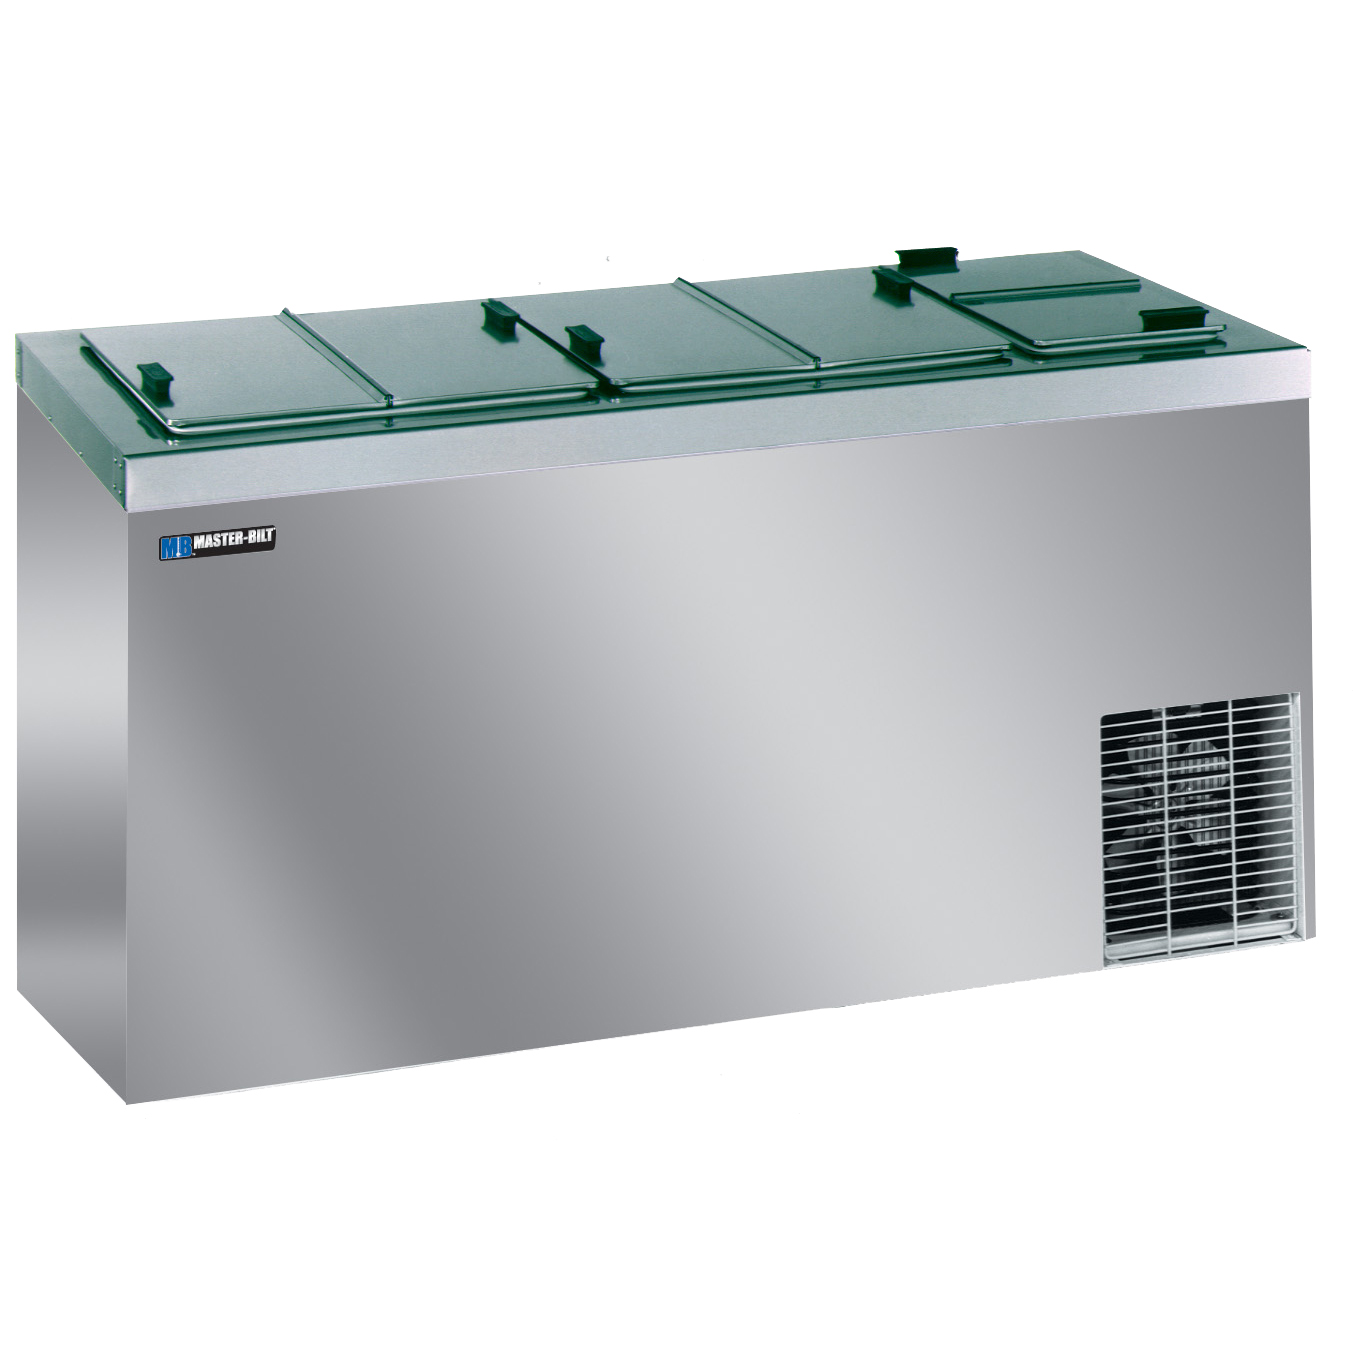 Master-Bilt Products DC-10DSE ice cream dipping cabinet